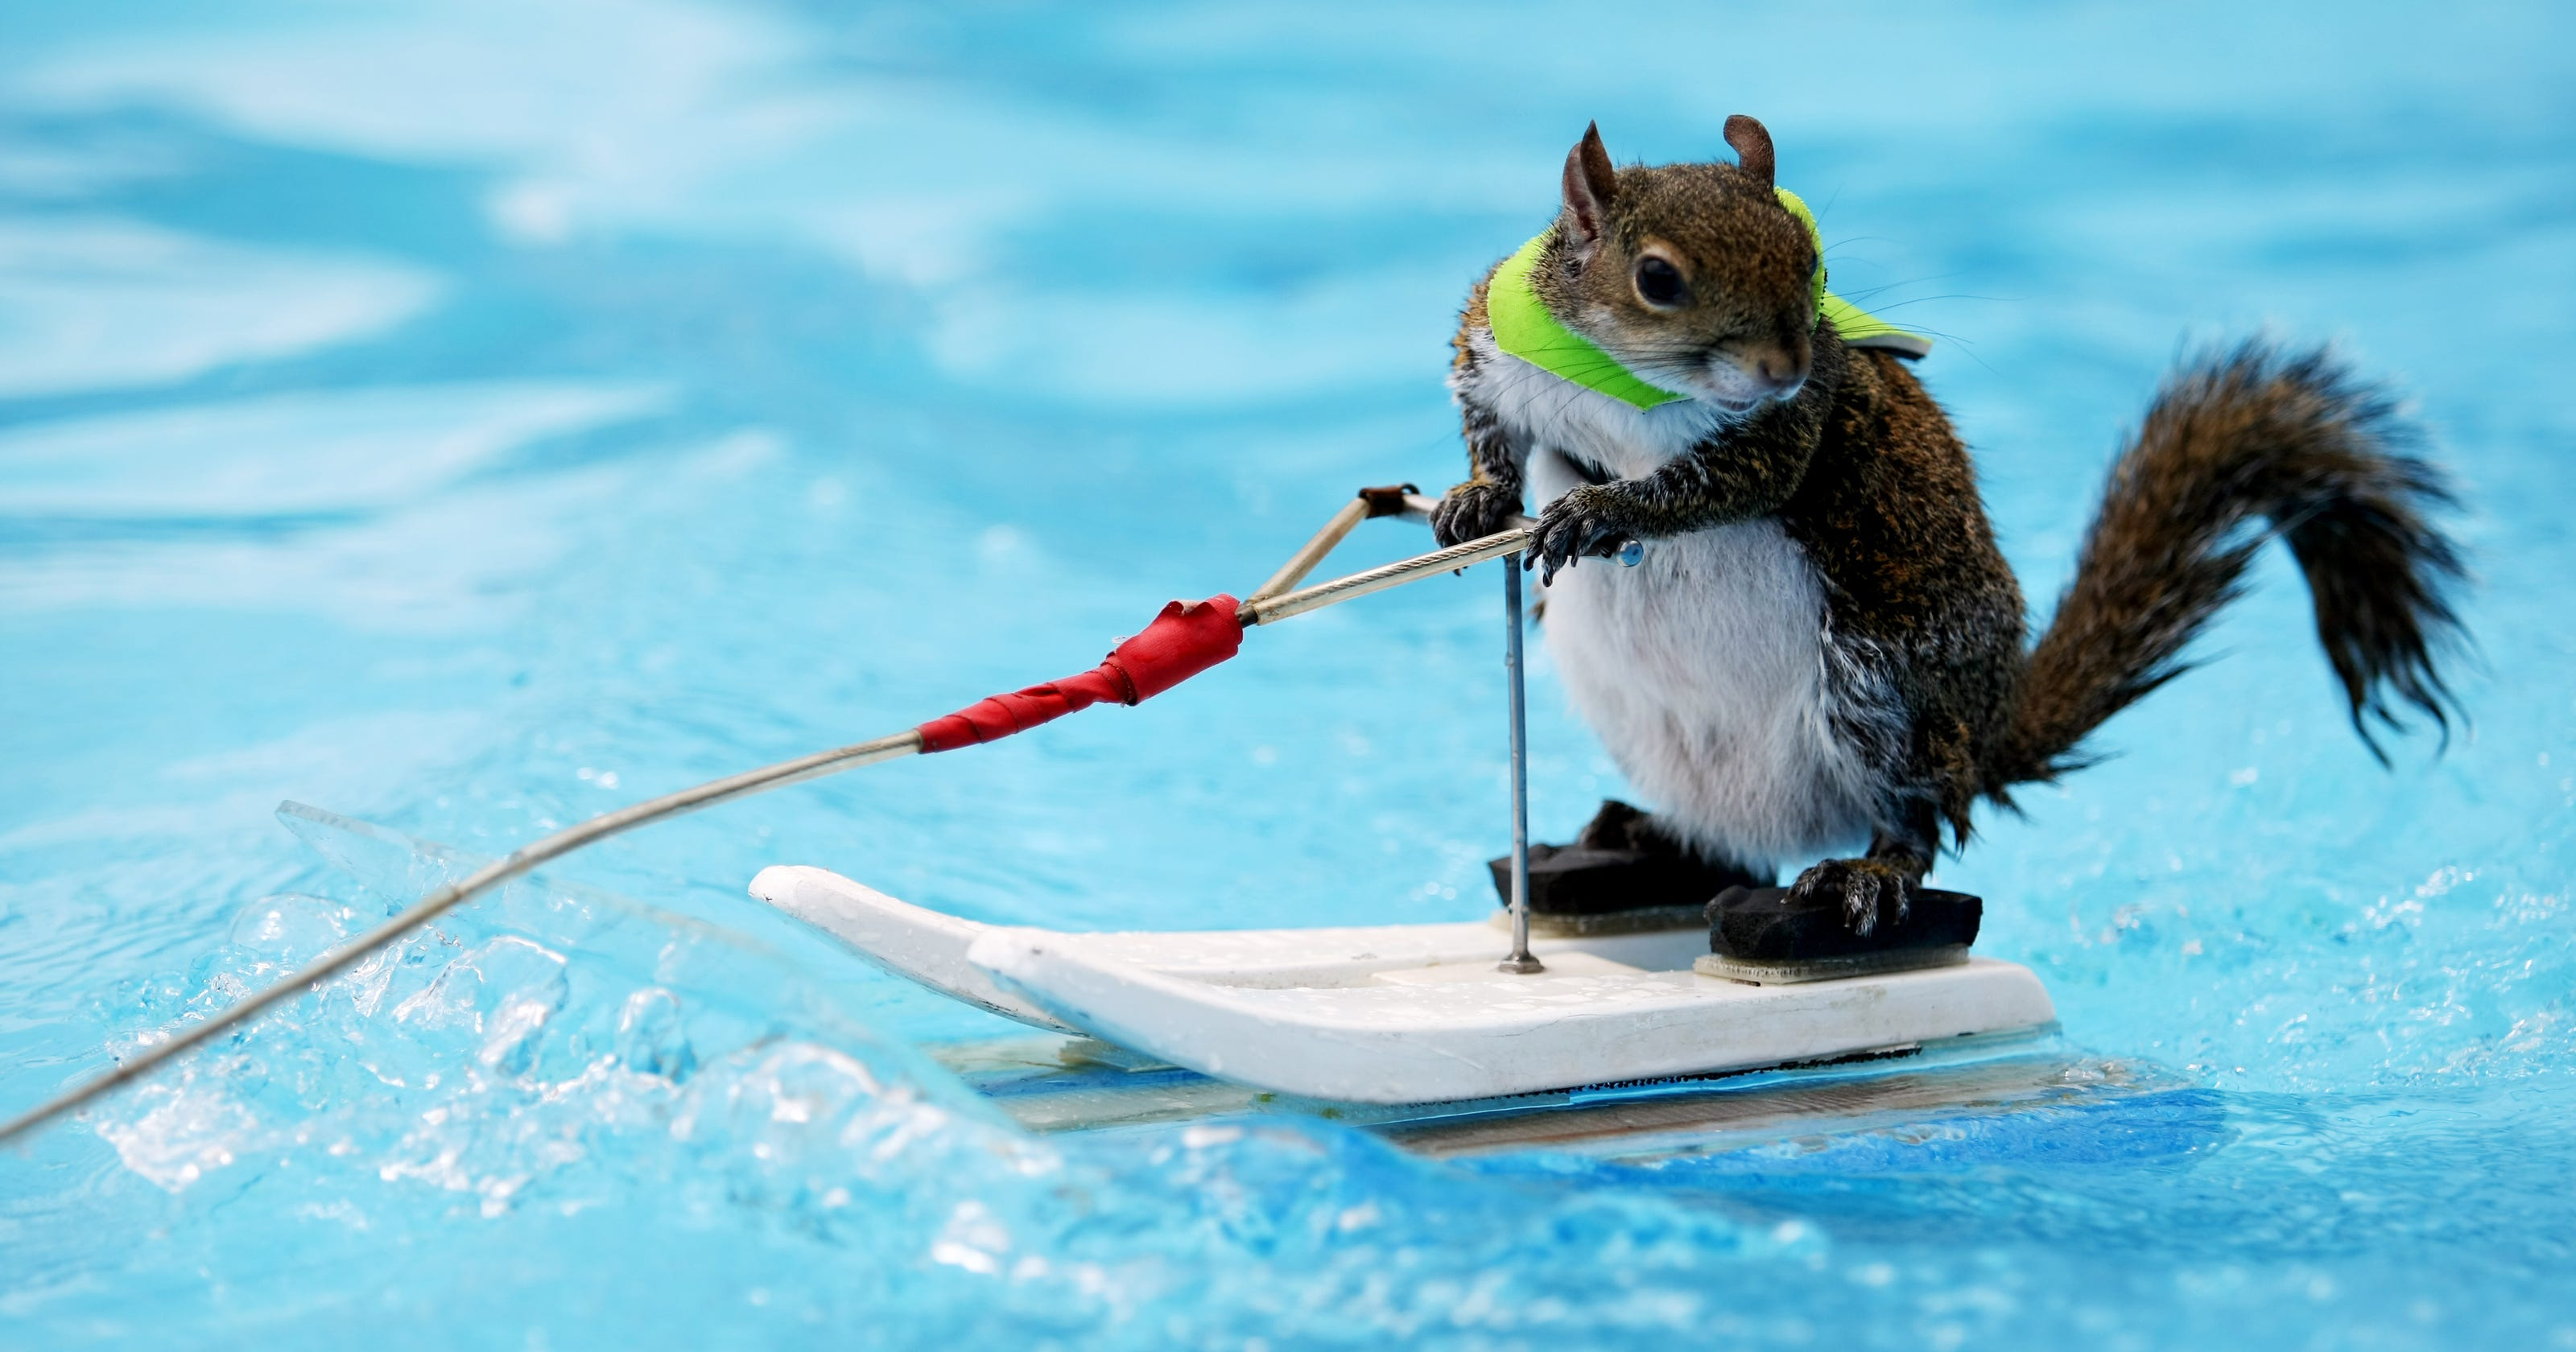 Detroit Boat Show to feature Twiggy the Water Skiing Squirrel